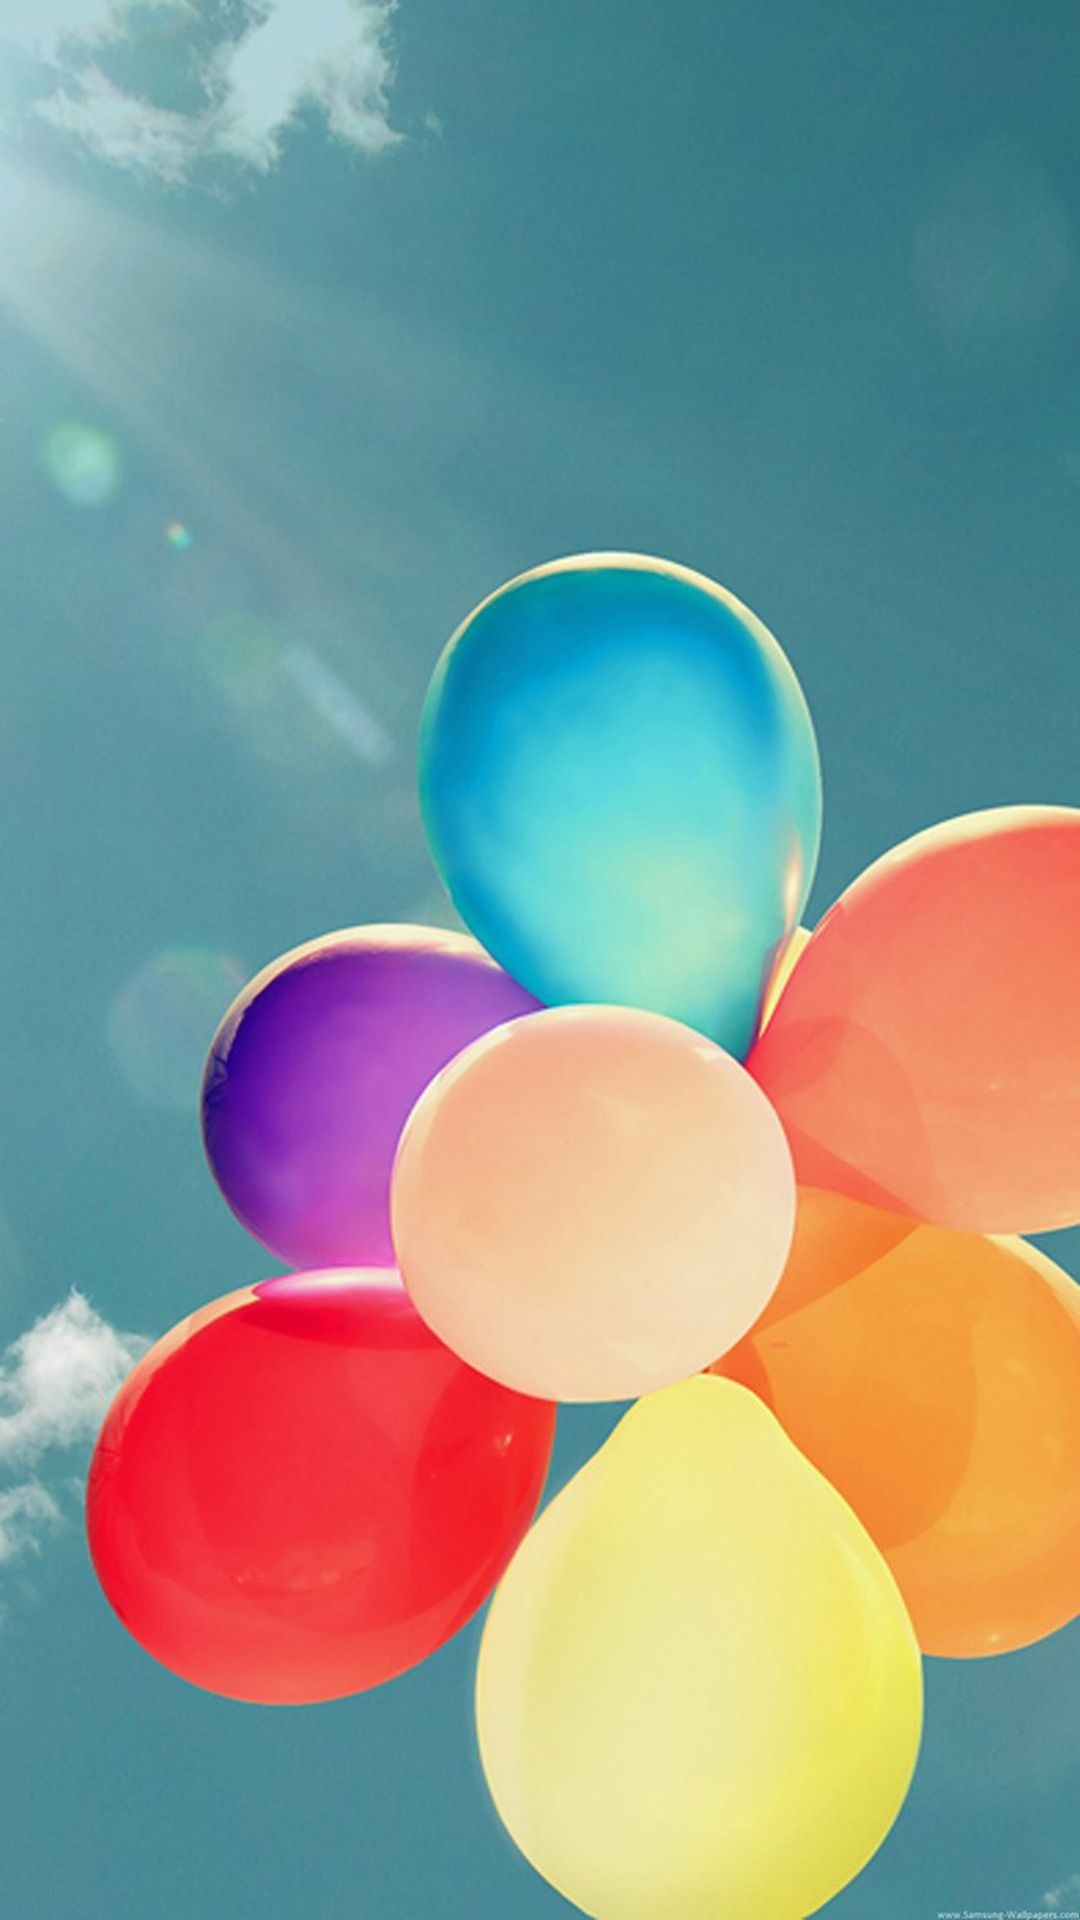 Colorful Balloons Bunch Flying High Iphone 6 Plus Wallpaper Iphone Wallpaper 3d Effect Iphone 5s Wallpaper Home Screen Wallpaper Hd